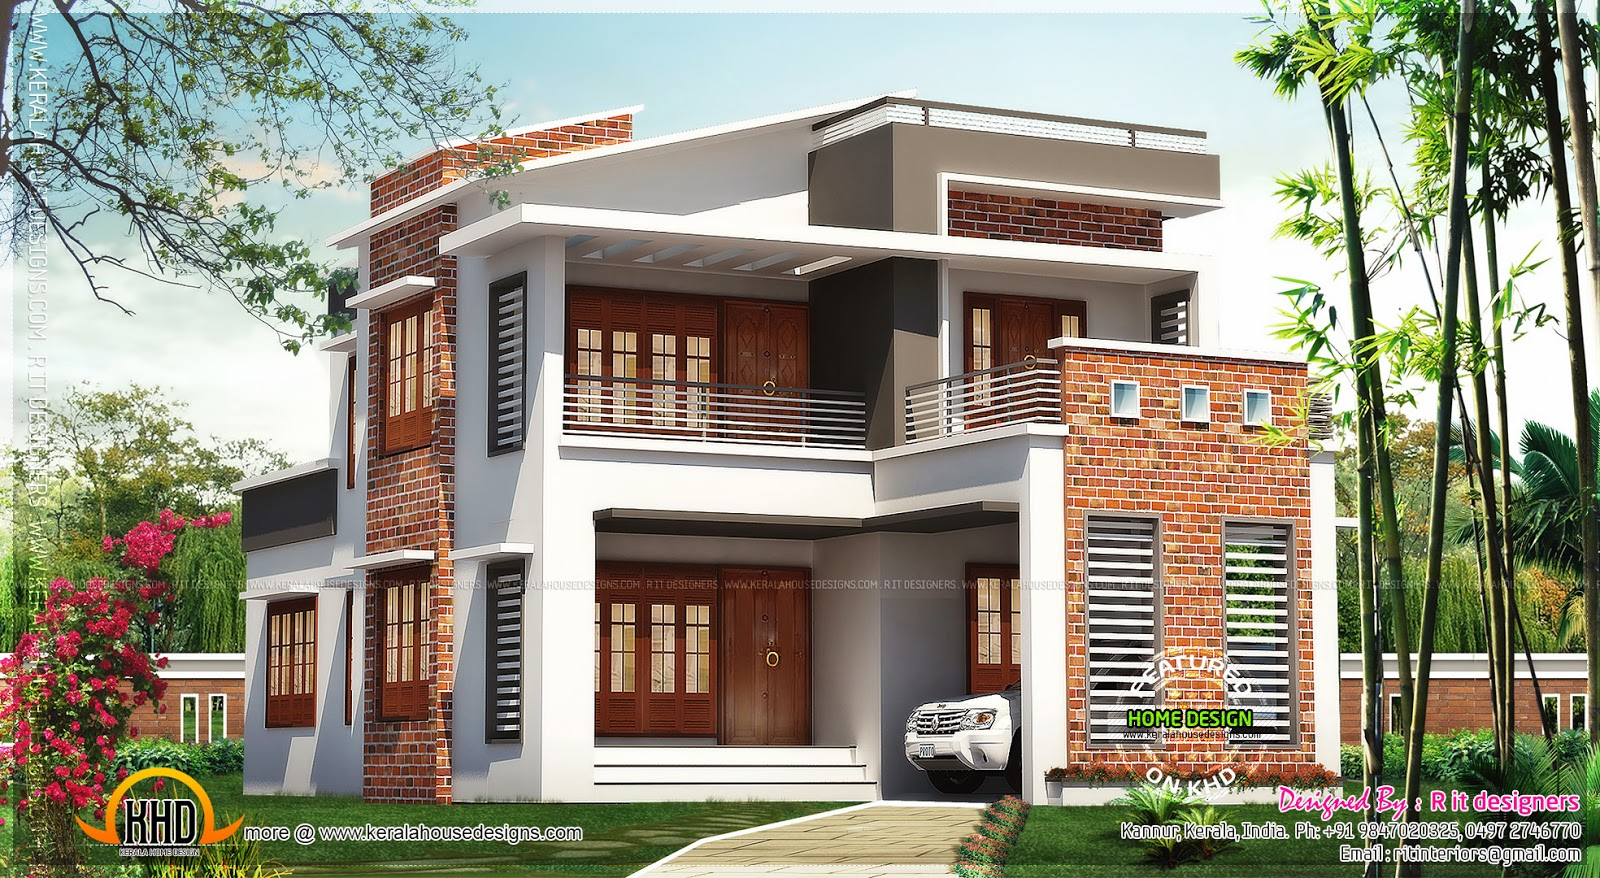 Brick mix house exterior design kerala home design and for Indian home outer design